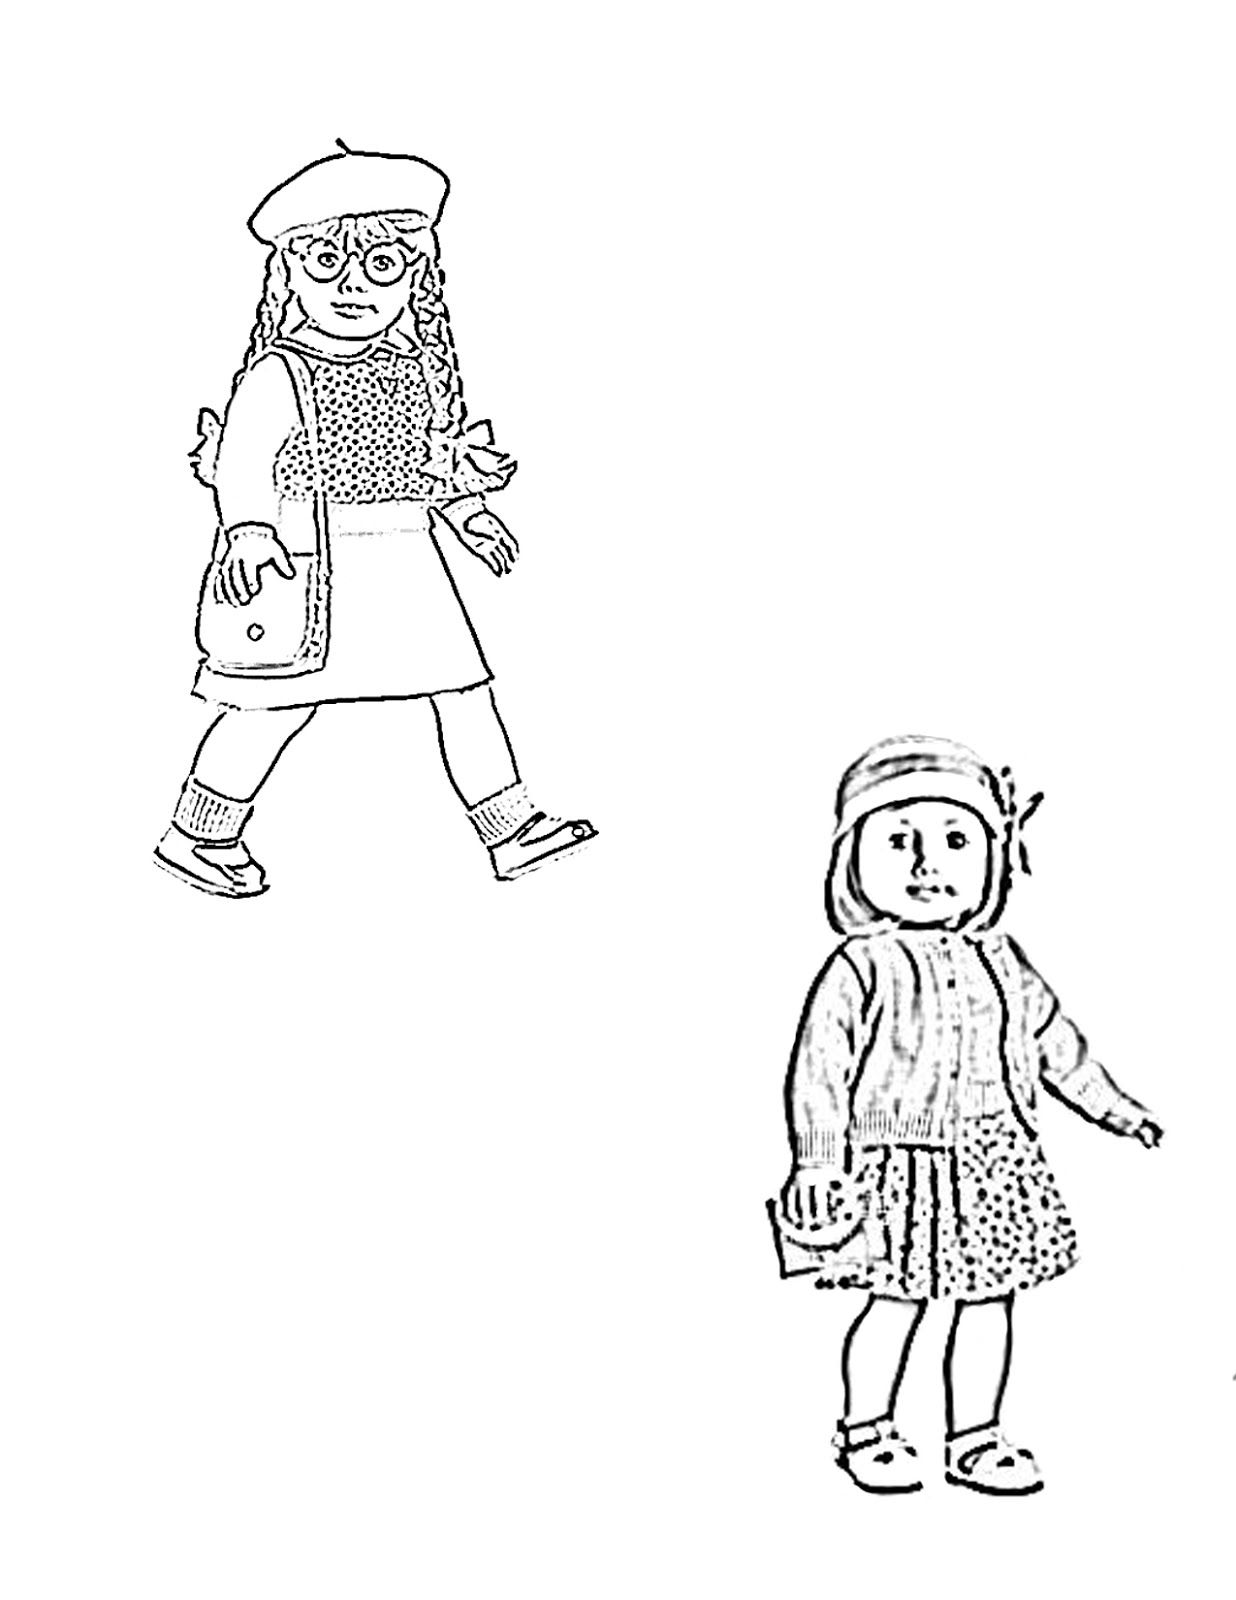 Printable coloring pages american girl dolls - American Doll Coloring Sheets Coloring Page American Girl Doll